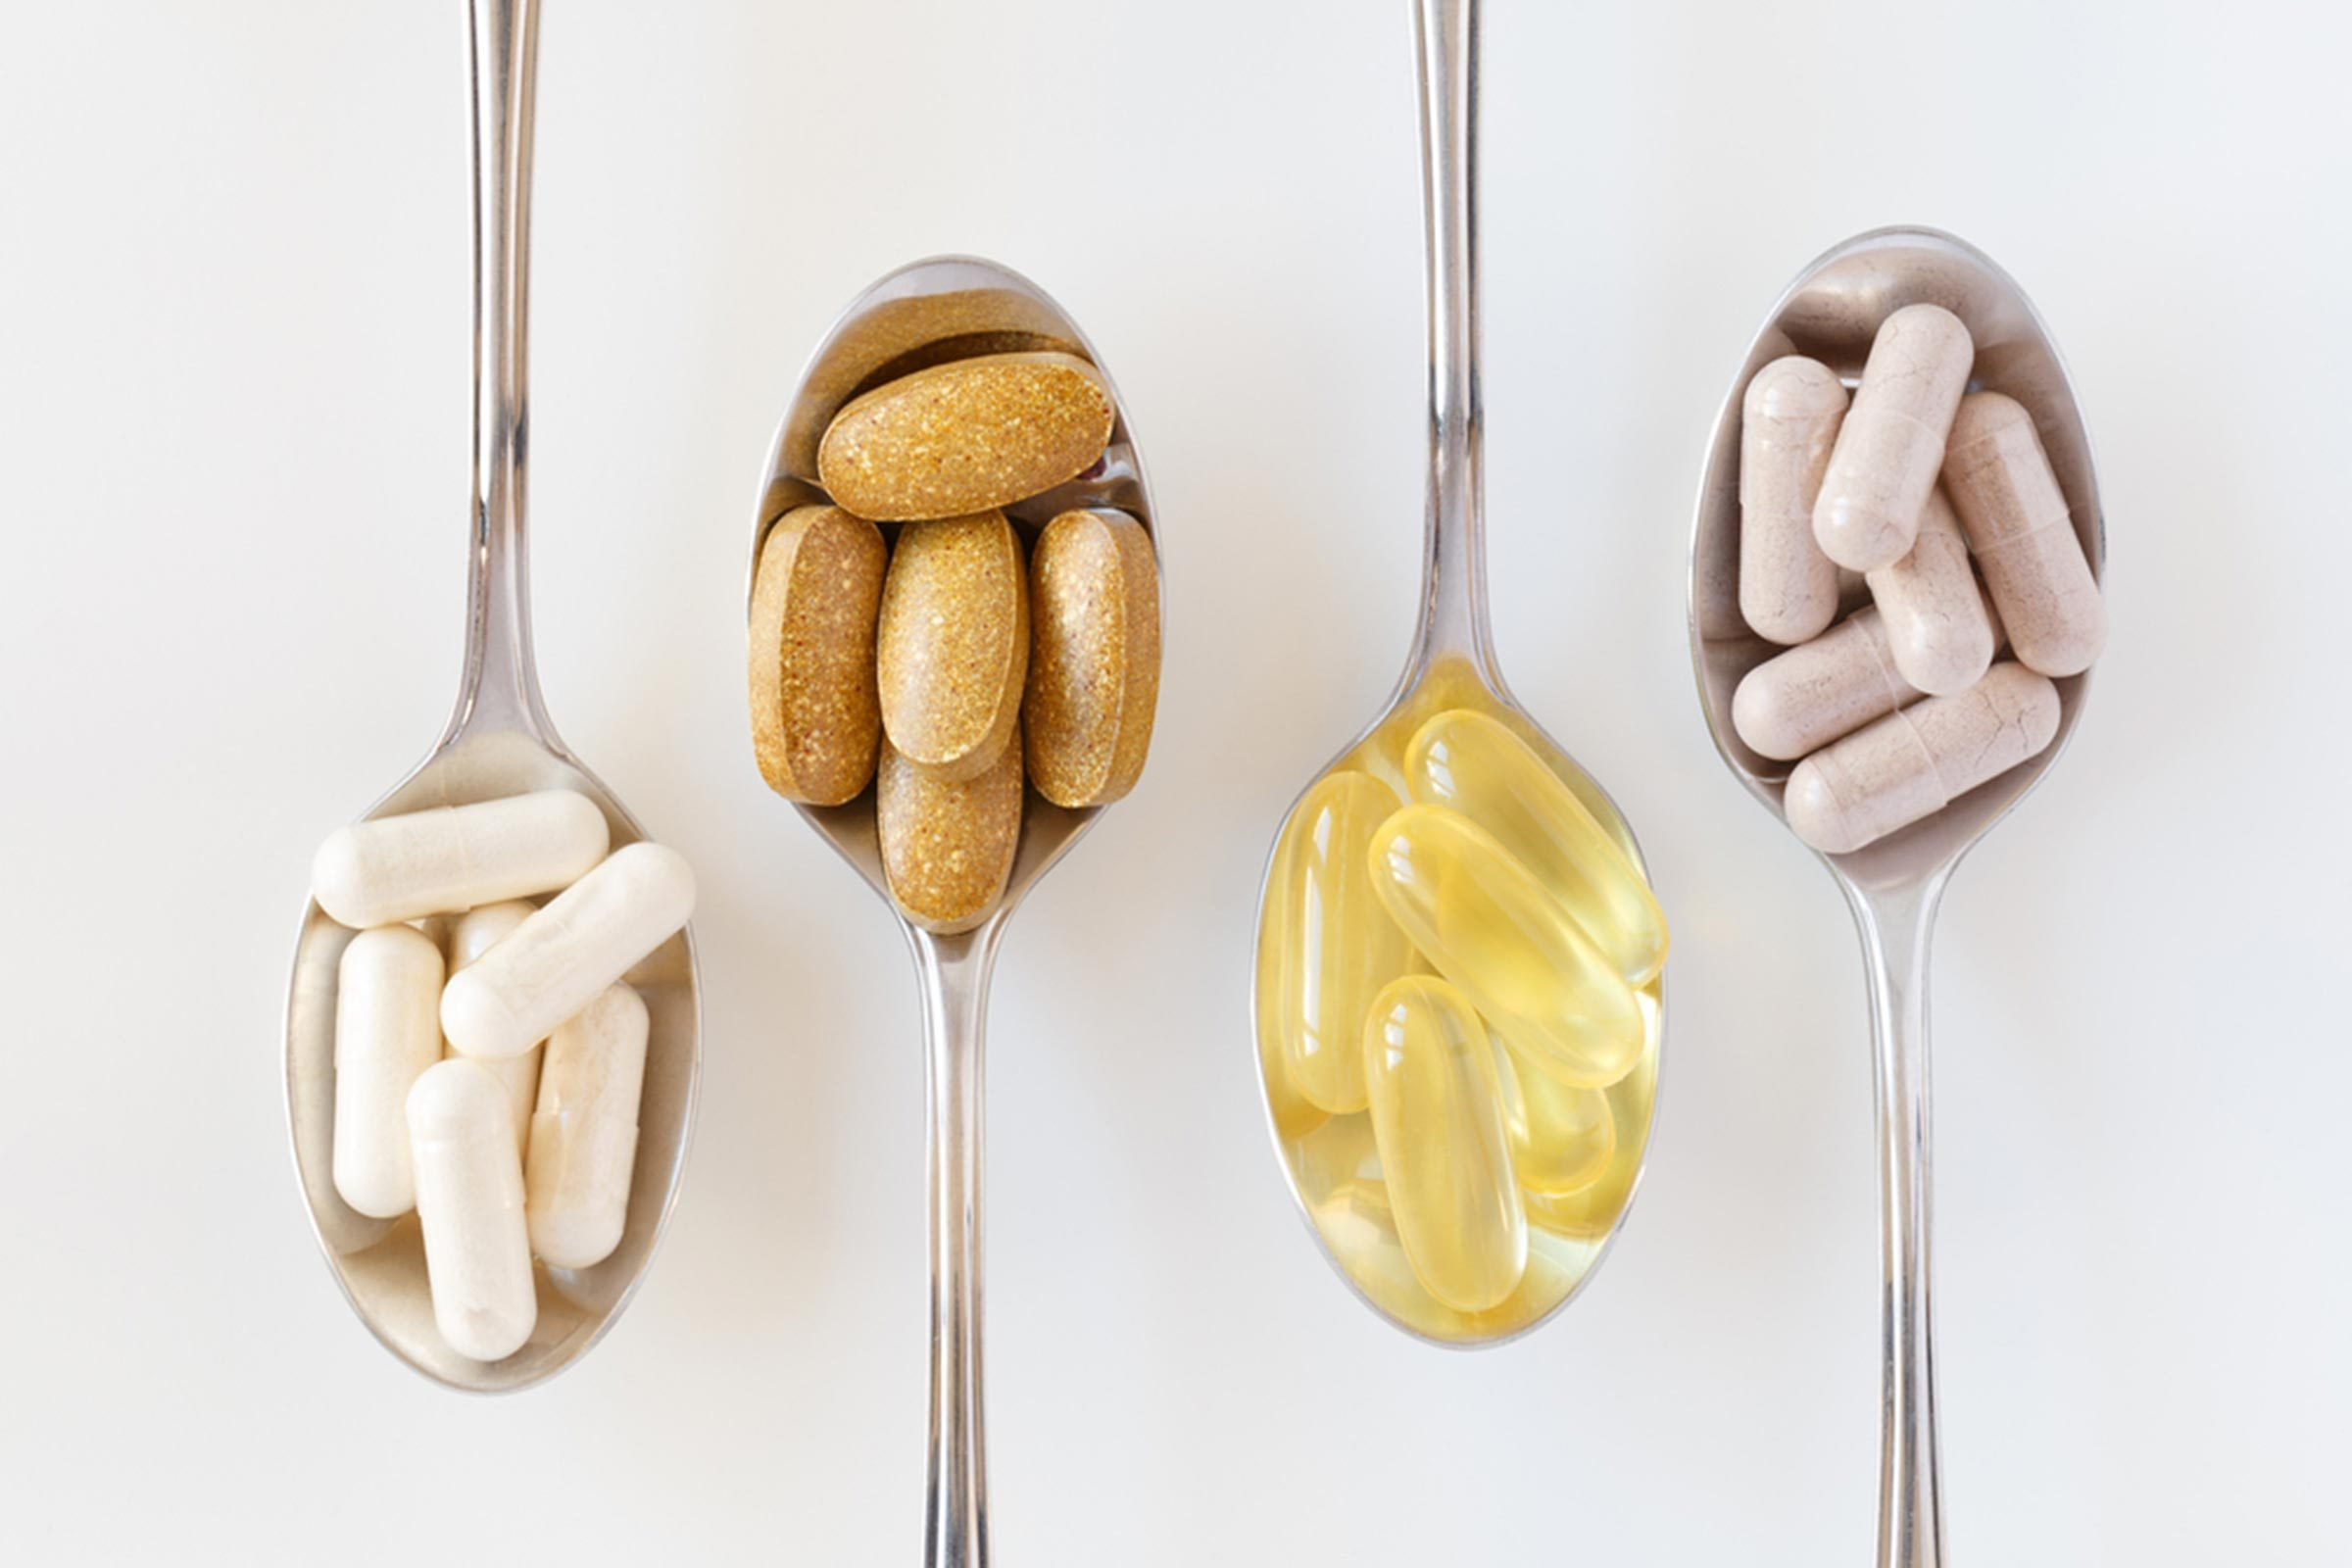 teaspoons holding different types of supplements